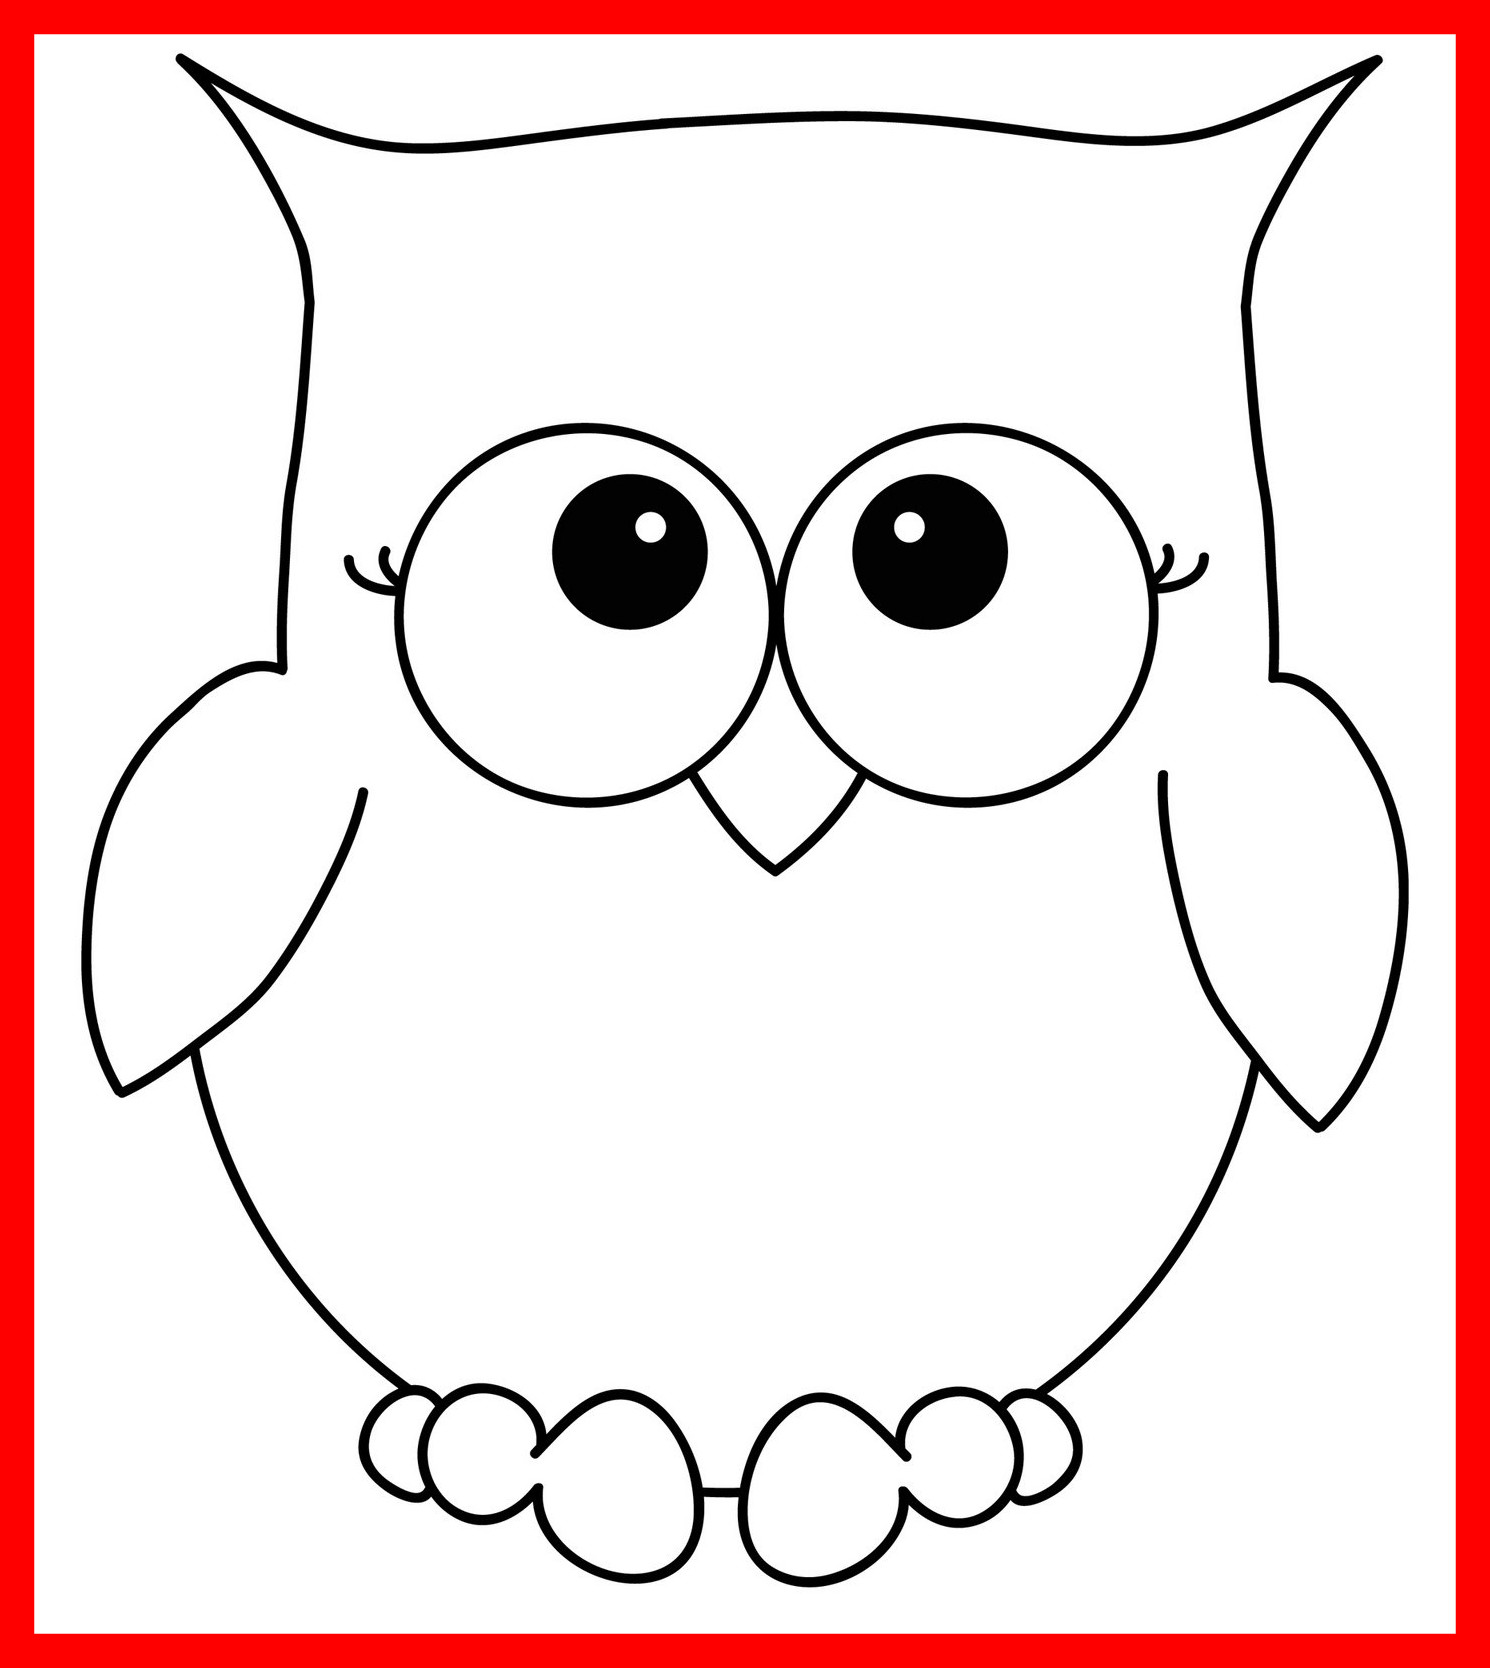 1490x1668 Tremendous Valentine Owl Coloring Page Valentines Pages Always